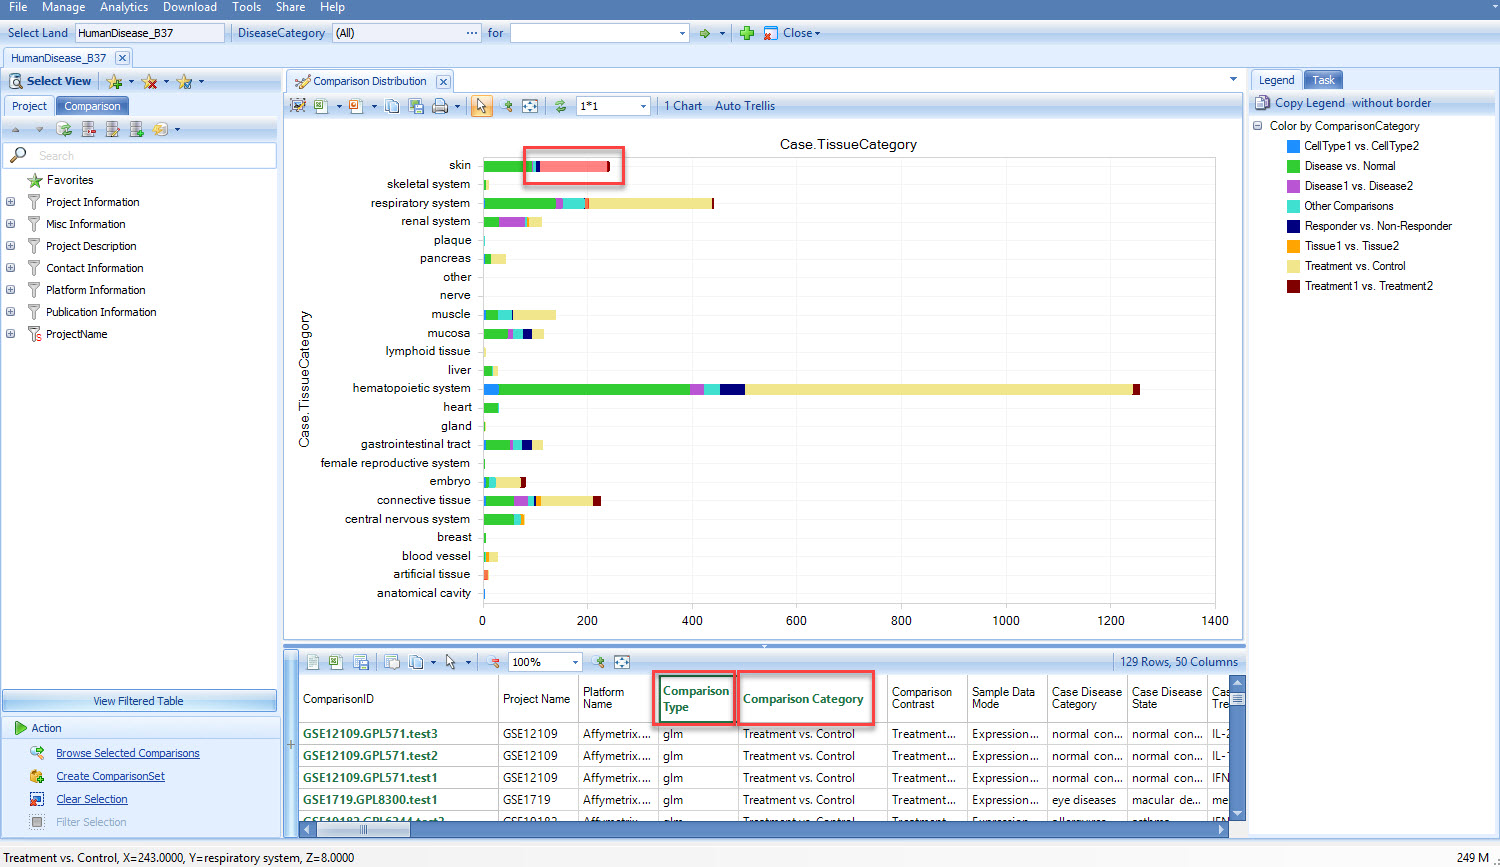 Comparison Distribution View. Comparison Details and Project Details are available once the users select a group of samples. For examples, Comparison Details include information on comparison test method and comparison category as highlighted in the figure.